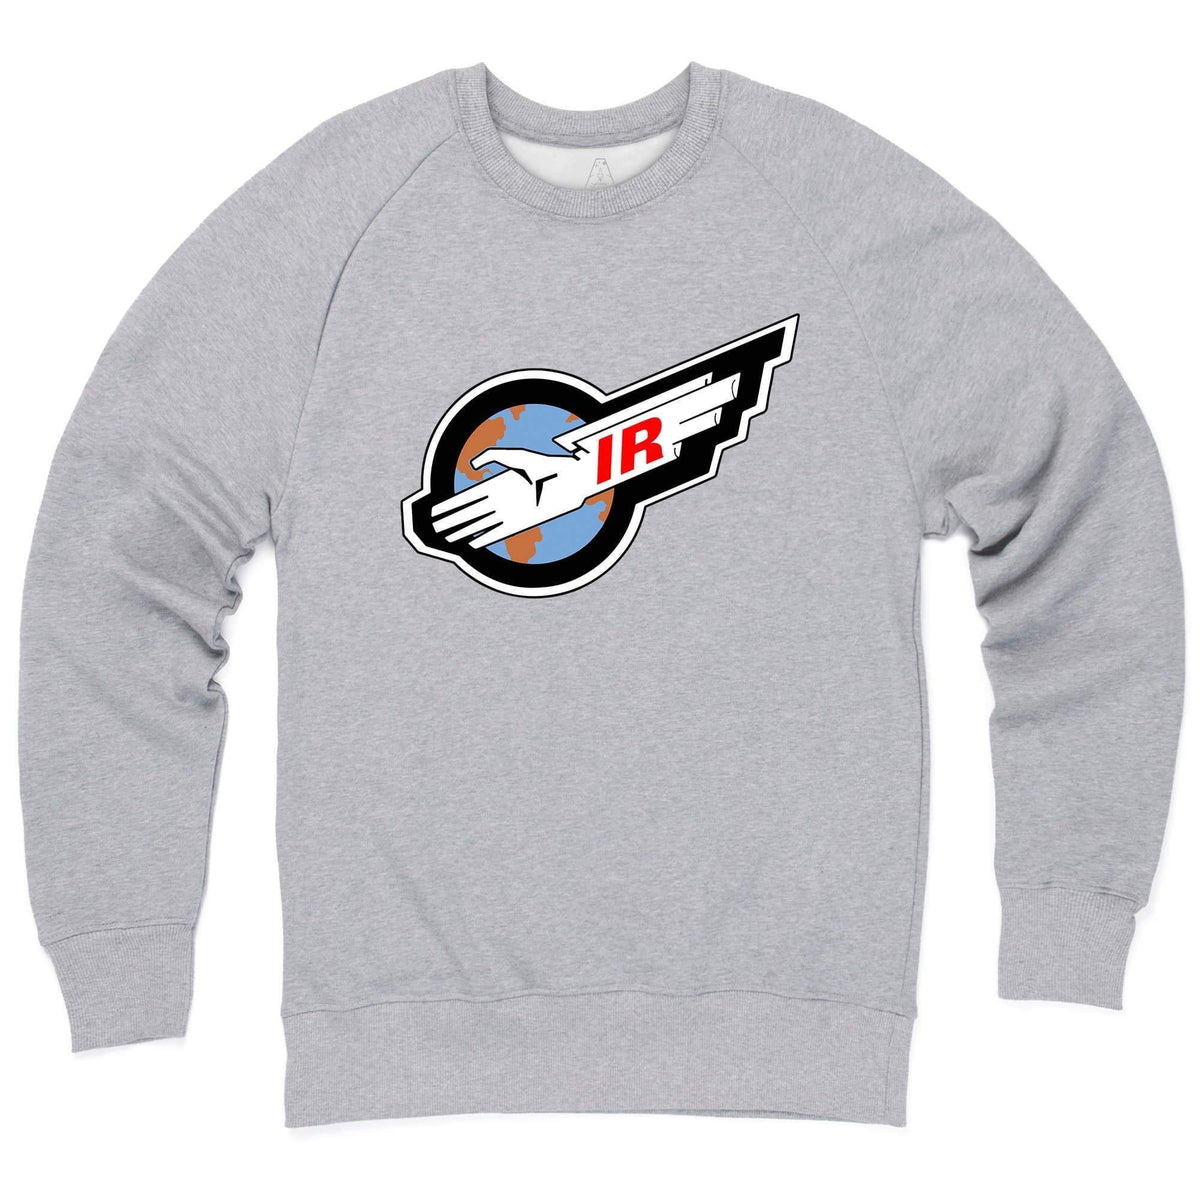 International Rescue/Thunderbirds Sweatshirt [Official & Exclusive] - The Gerry Anderson Store